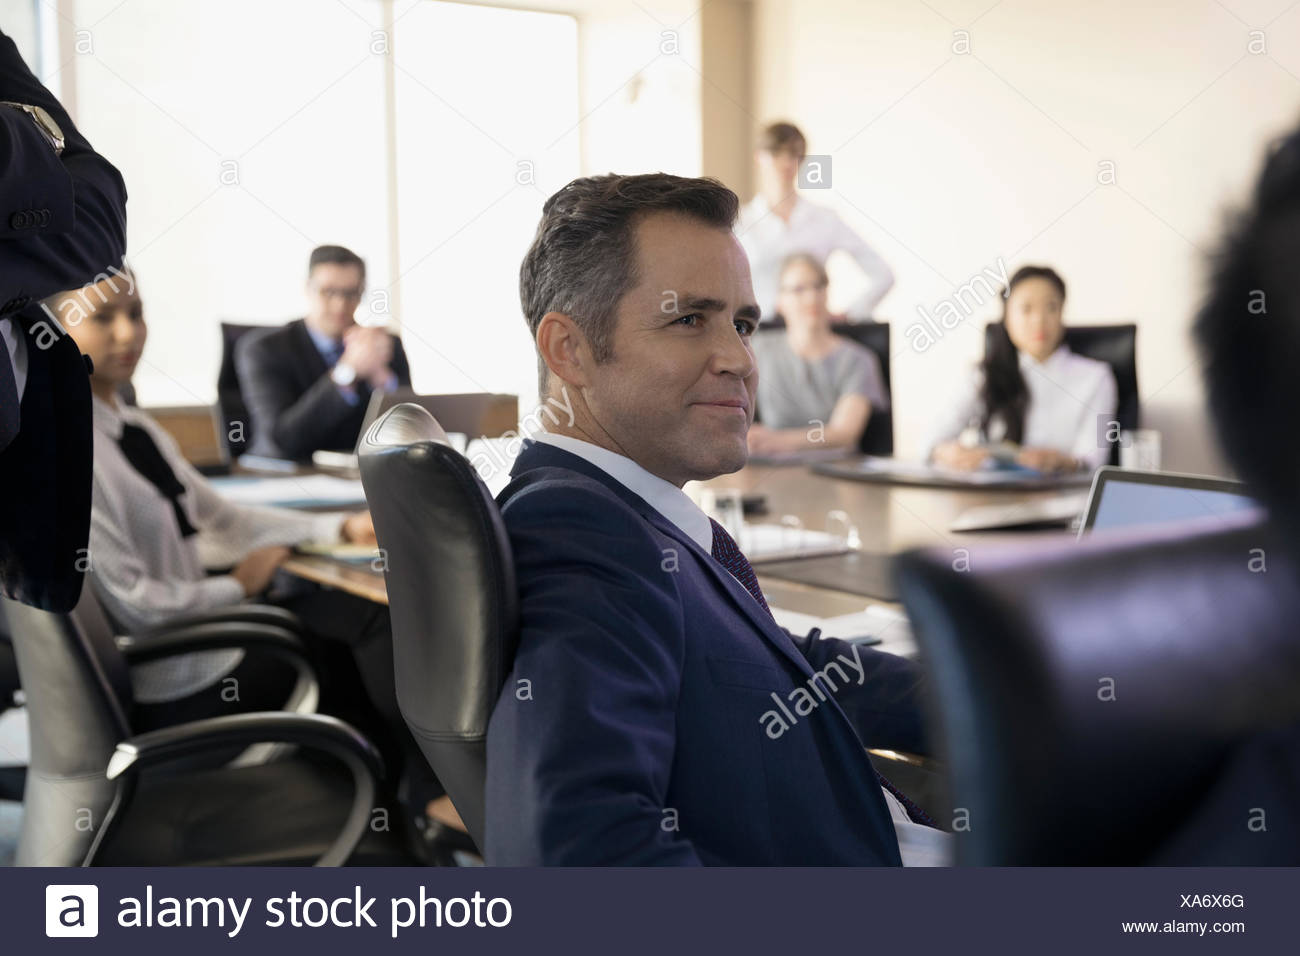 Stupendous Confident Male Lawyer Listening In Conference Room Meeting Home Interior And Landscaping Ponolsignezvosmurscom